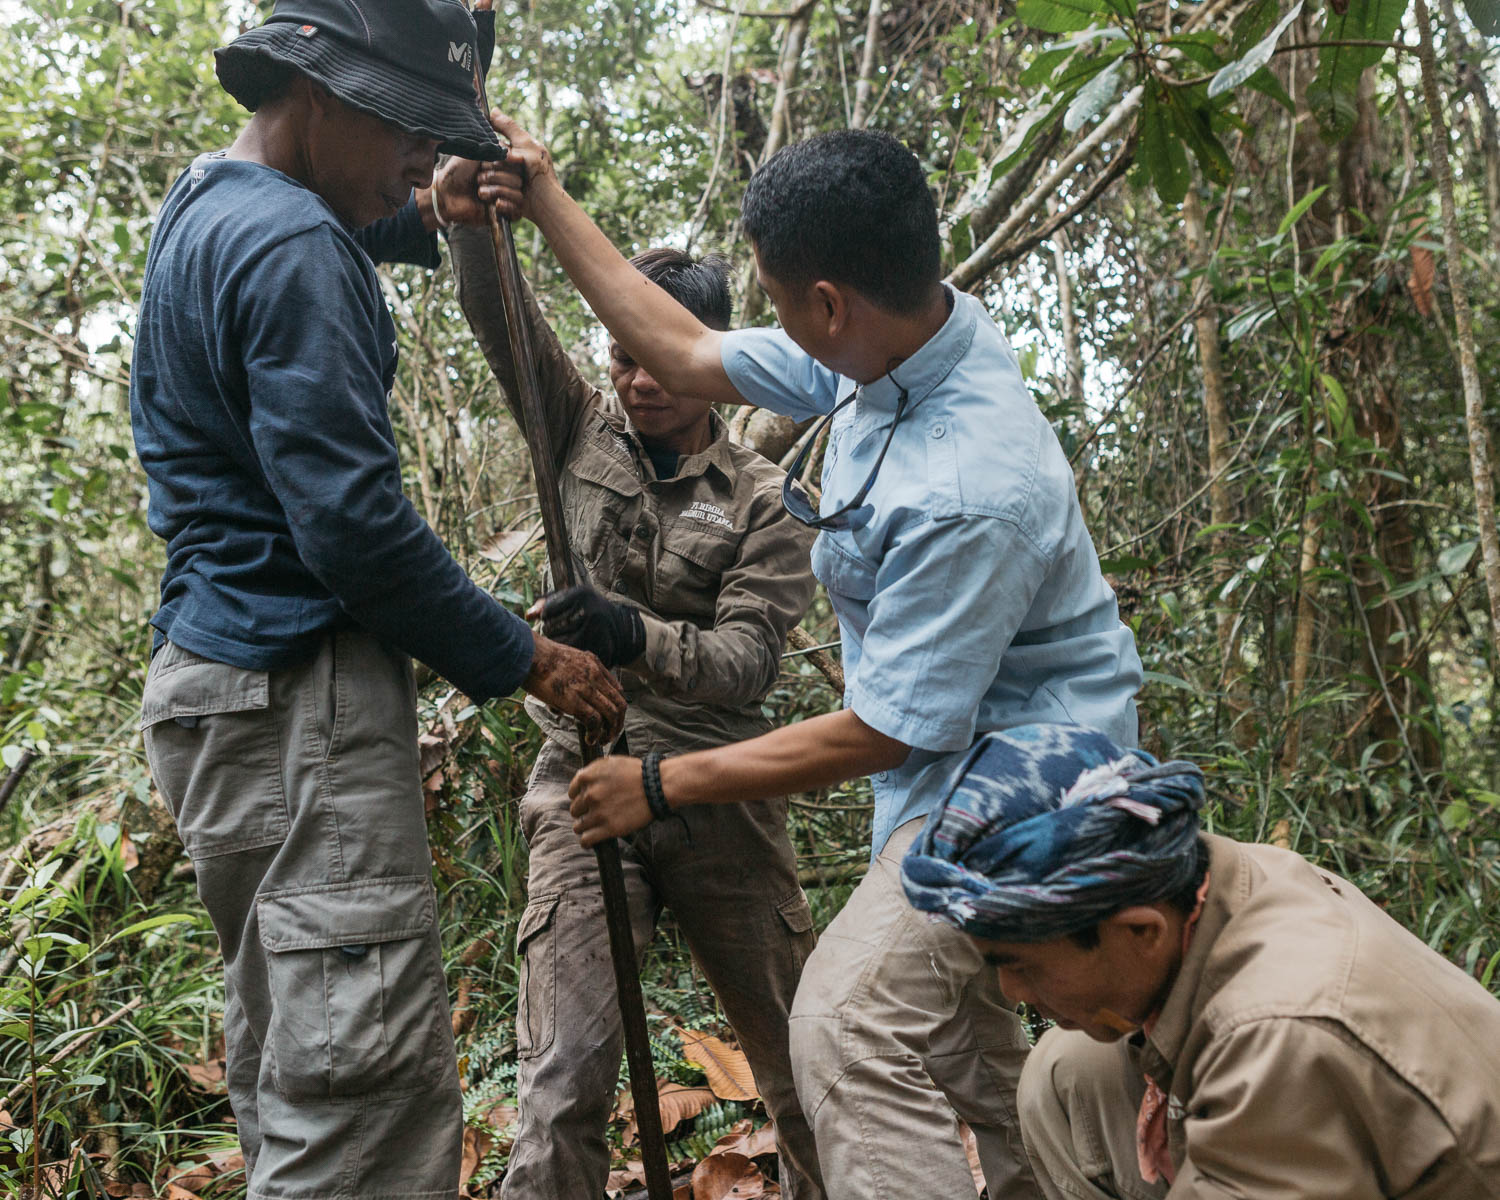 Staffs from PT Rimba Makmur Utama measure the depth of peat composition in the forest in Hantipan. In this area, more than 3 meters of peat detected before touching the real soil.